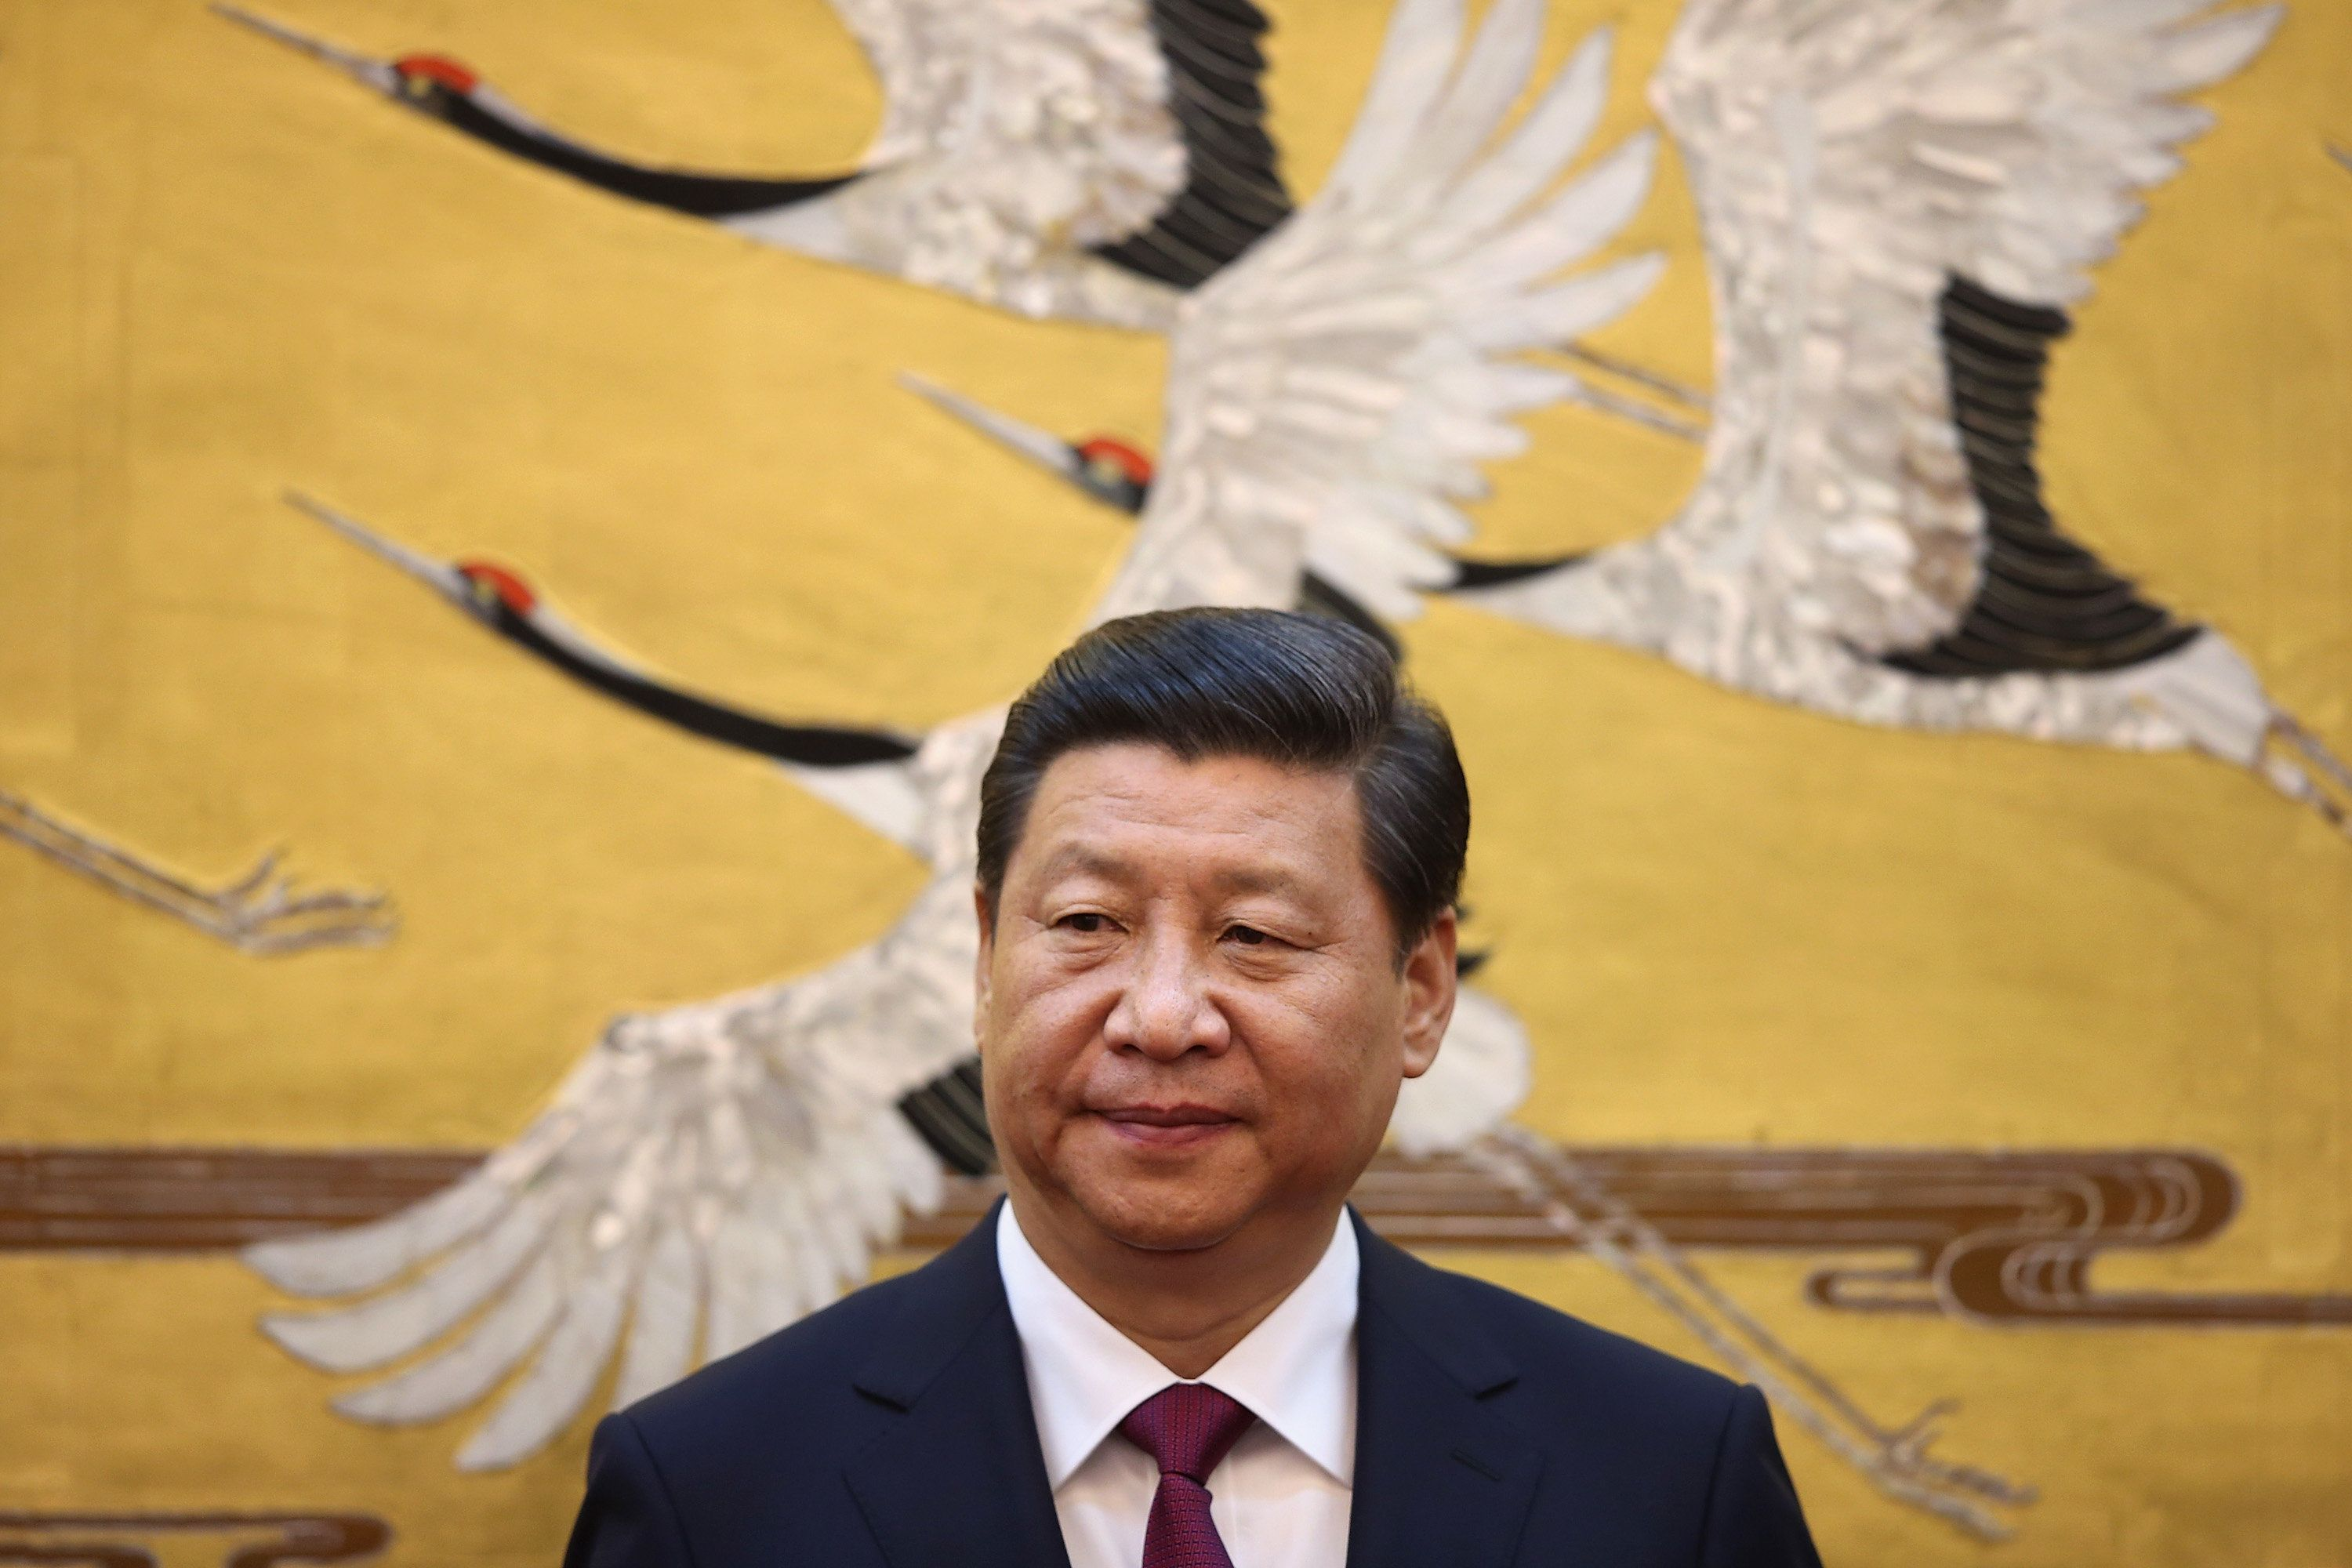 BEIJING, CHINA - SEPTEMBER 18:  Chinese President Xi Jinping attends a signing ceremony with King Abdullah II bin Al Hussein of Jordan at the Great Hall of People on September 18, 2013 in Beijing, China. At the invitation of Chinese President Xi Jinping, King Abdullah II bin Al Hussein of Jordan paid a state visit to China from September 15 to 18. (Photo by Feng Li - Pool/Getty Images)